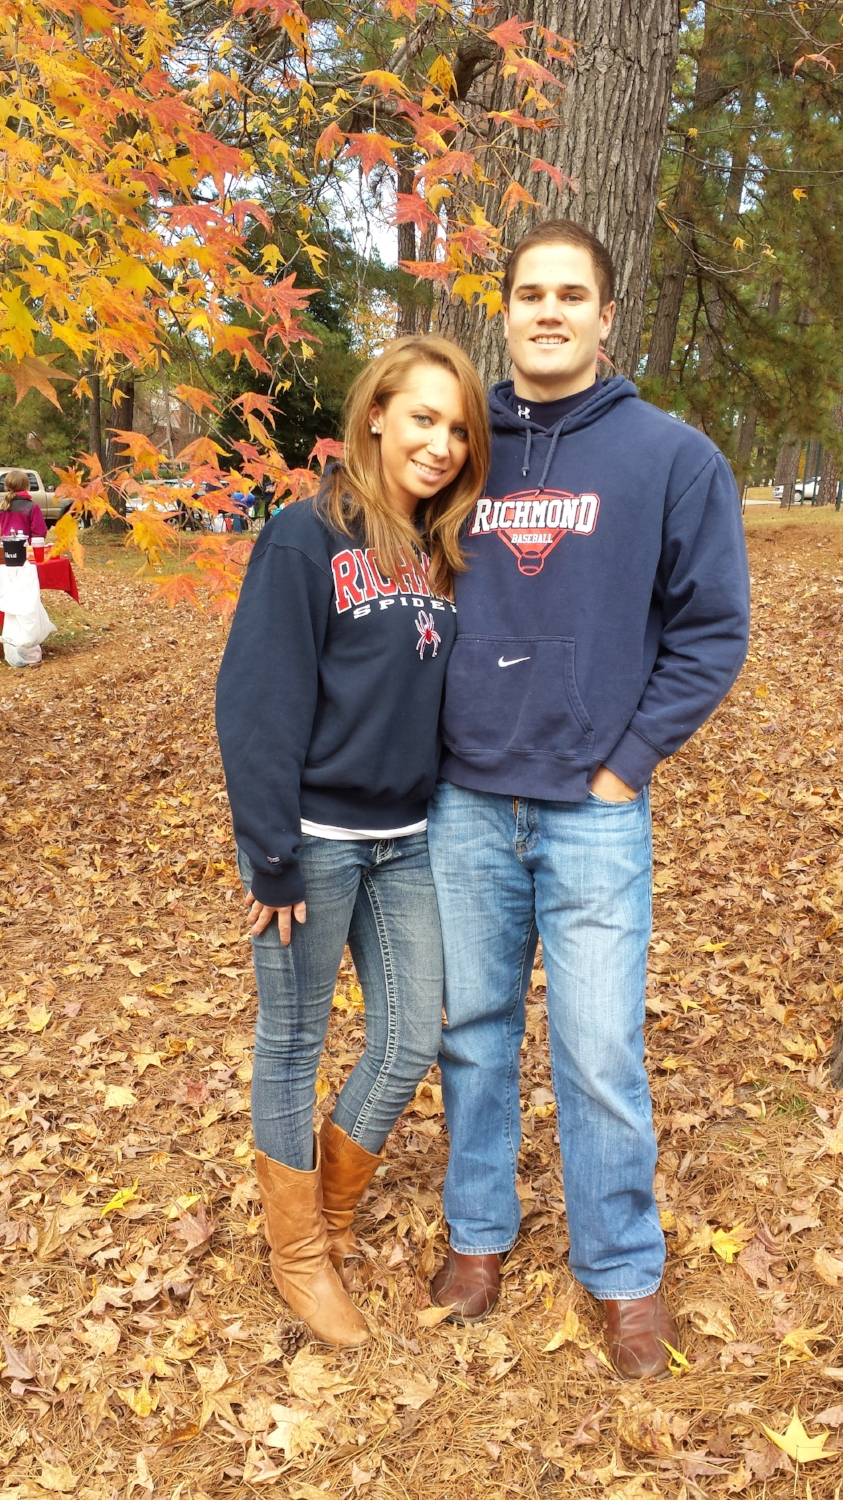 This pic was taken at a Richmond Spiders football game on November 23, 2013. It was our first time meeting Alex. He didn't mind me taking a pic. I liked him already!